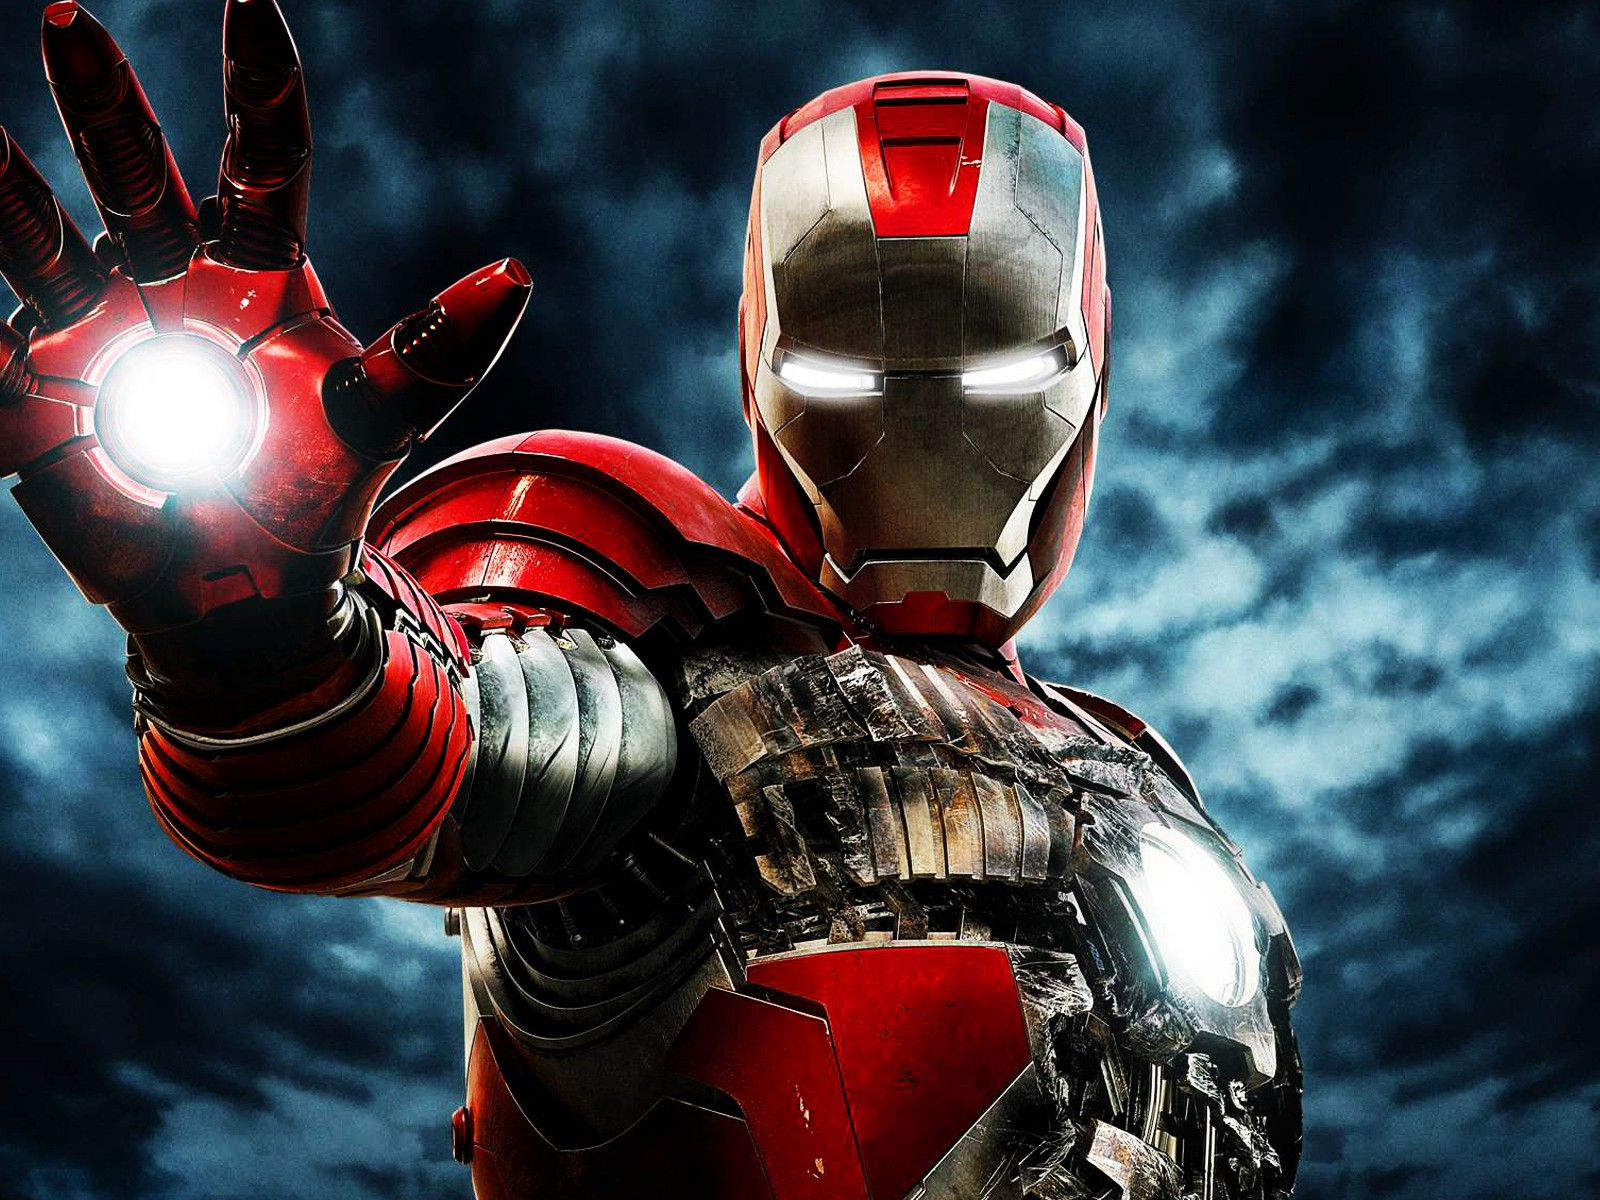 http://1.bp.blogspot.com/-Y05W4mmE9Zs/UXXqCX9XlvI/AAAAAAAABuM/LFZeUoWxGdM/s1600/Iron-Man-3-HD-Wallpapers.jpg